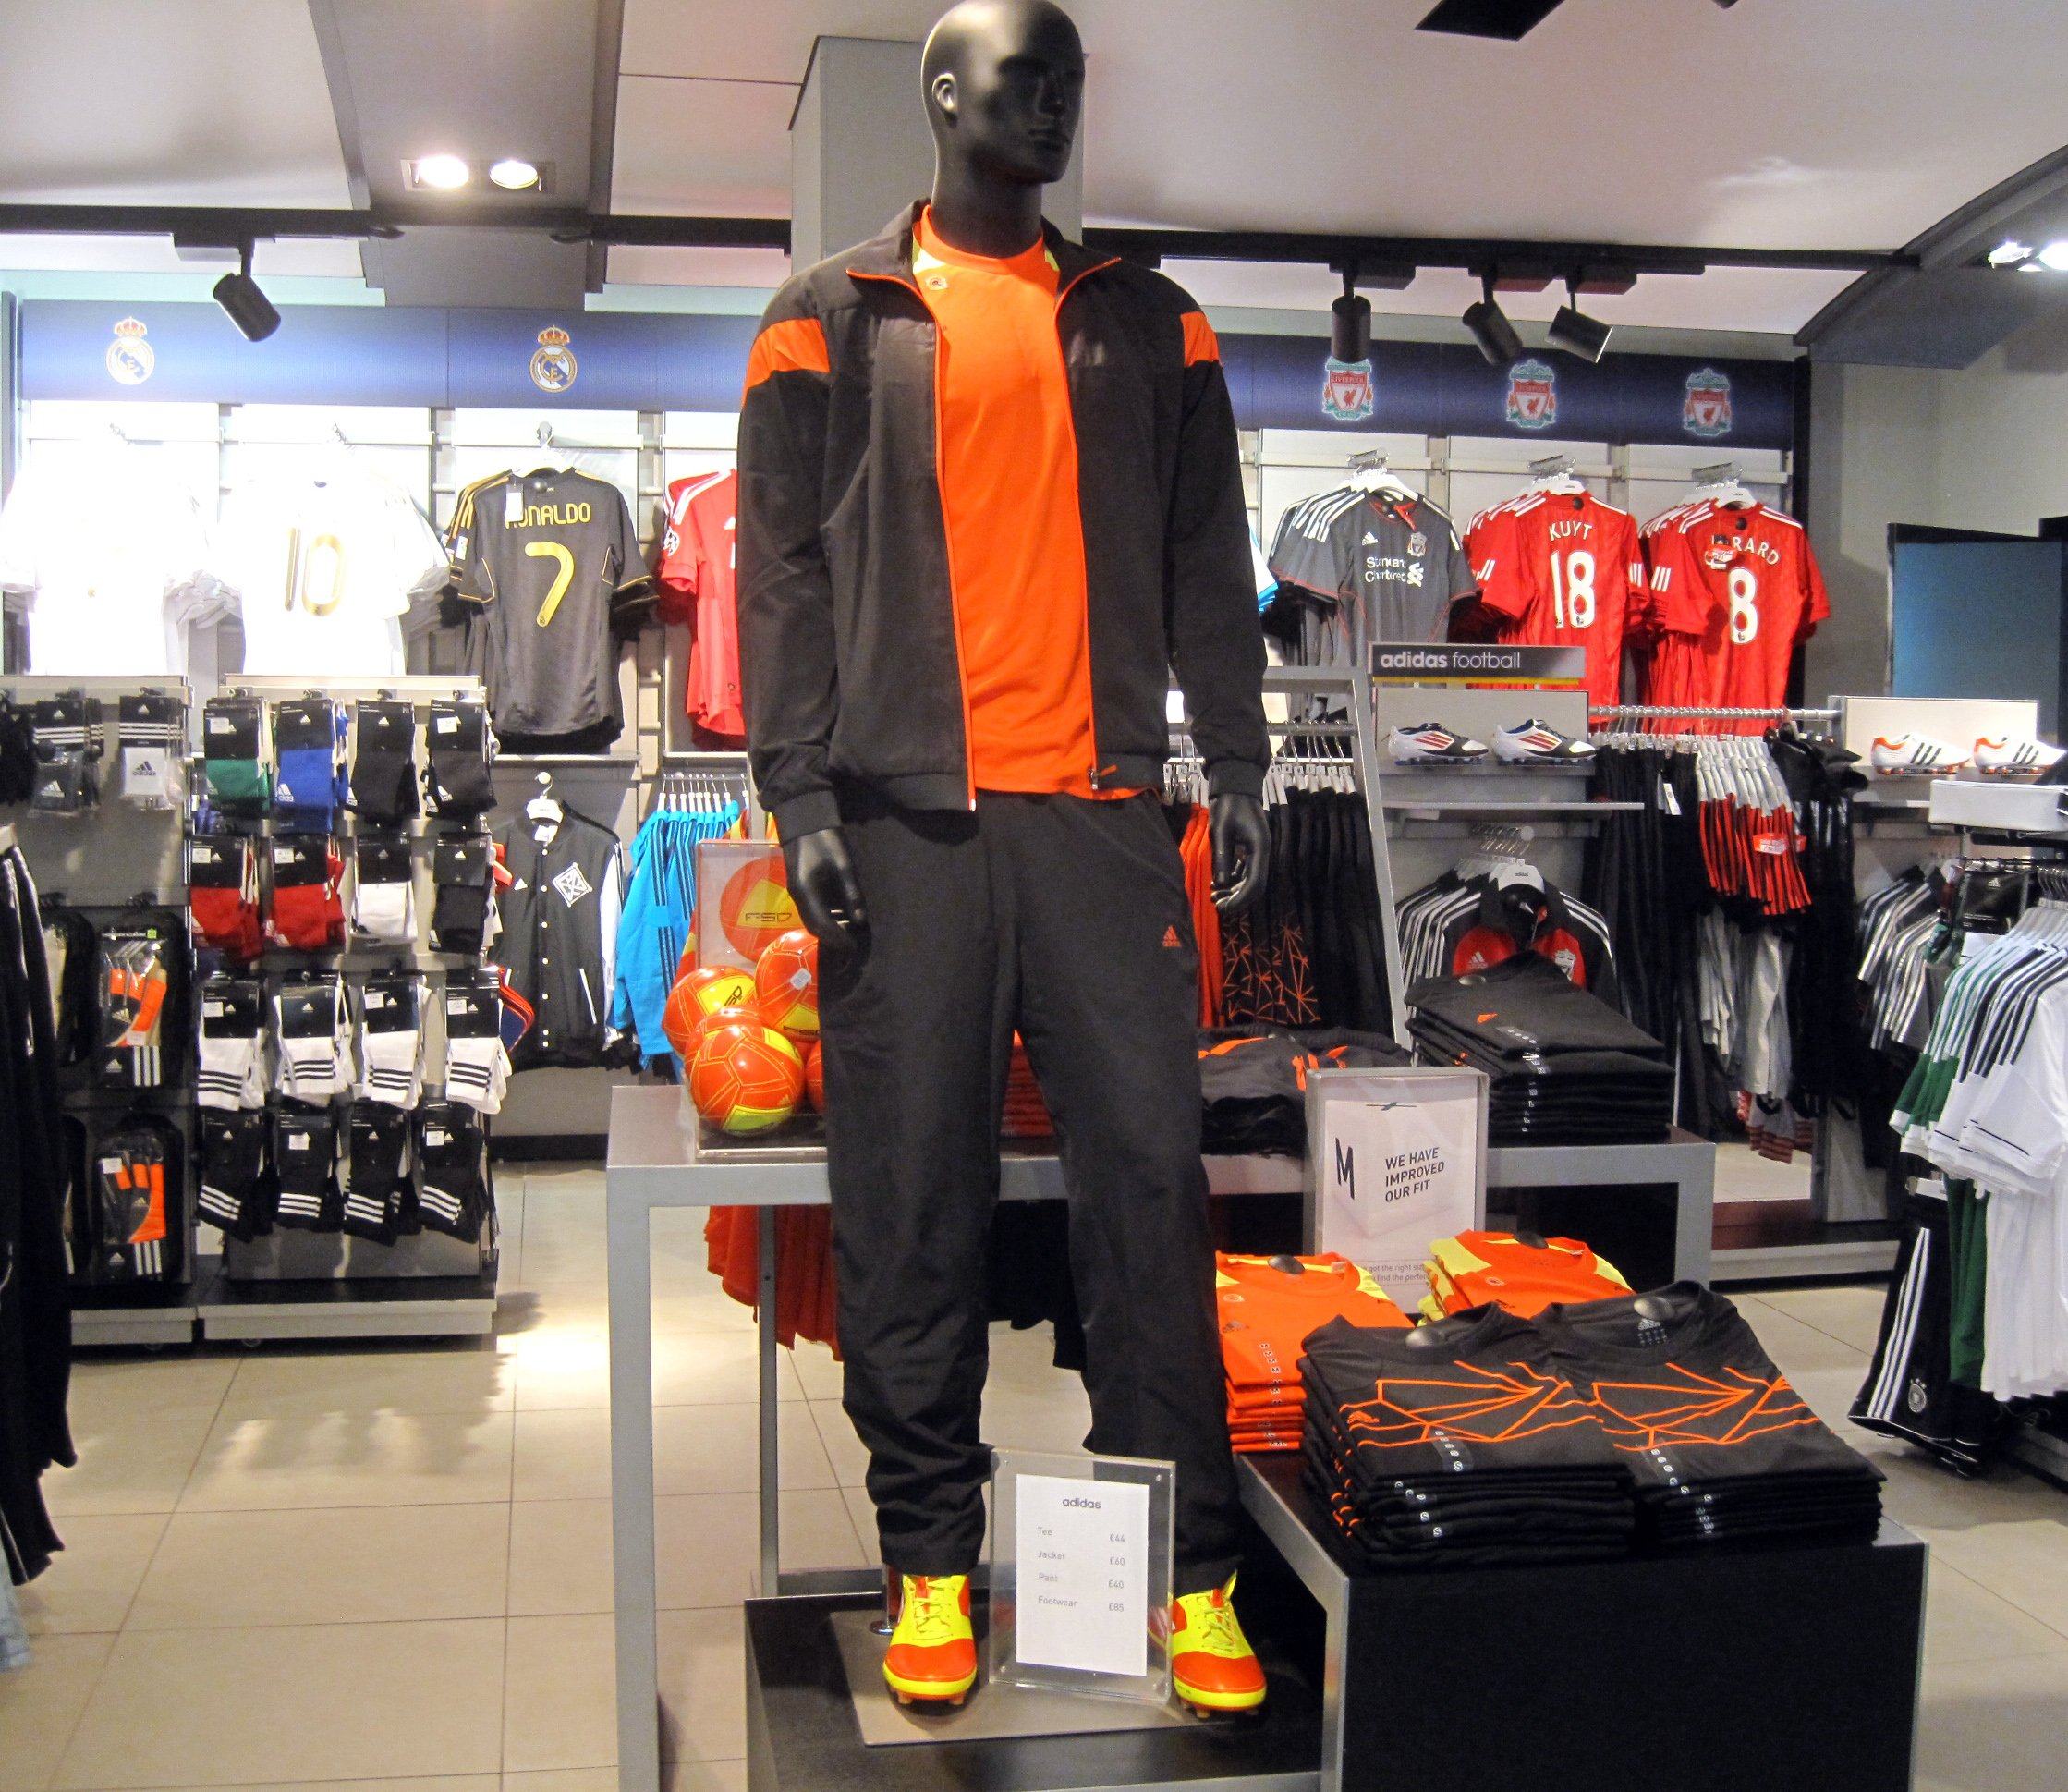 BUCHAREST, ROMANIA - JULY 18, 2014: Adidas Shoes In Shoe Store Display. Is a German multinational corporation that designs and manufactures sports clothing